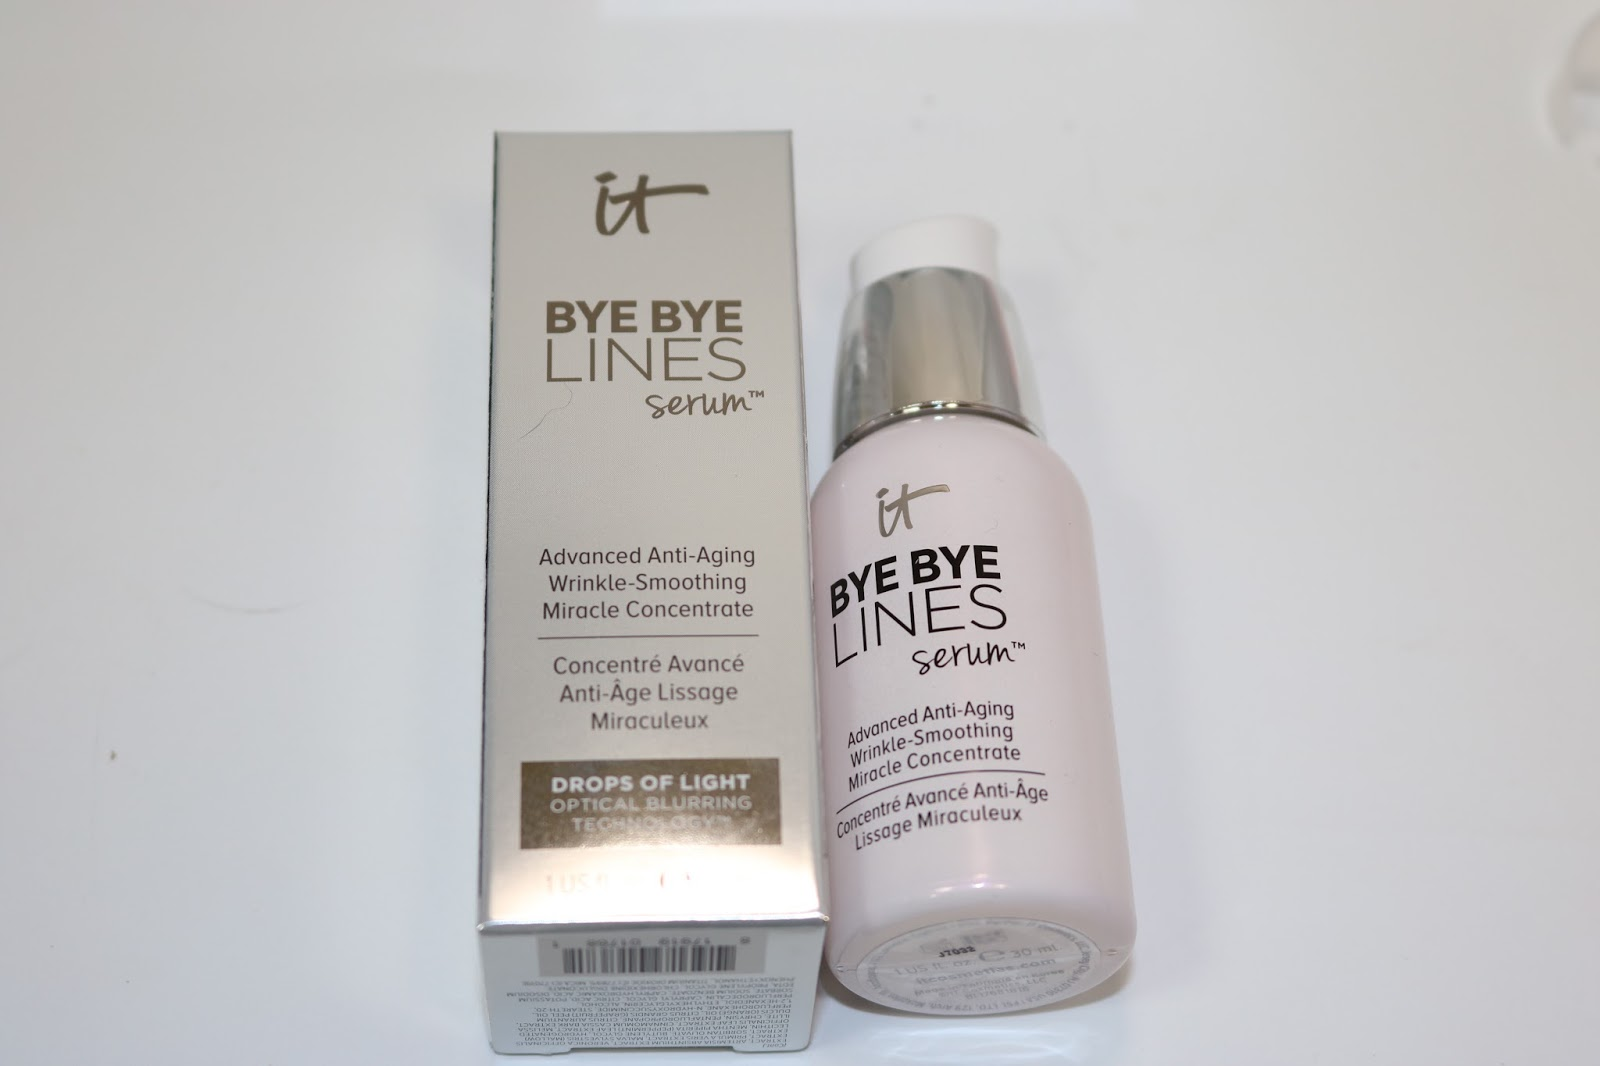 IT Cosmetics Bye Bye Lines Serum